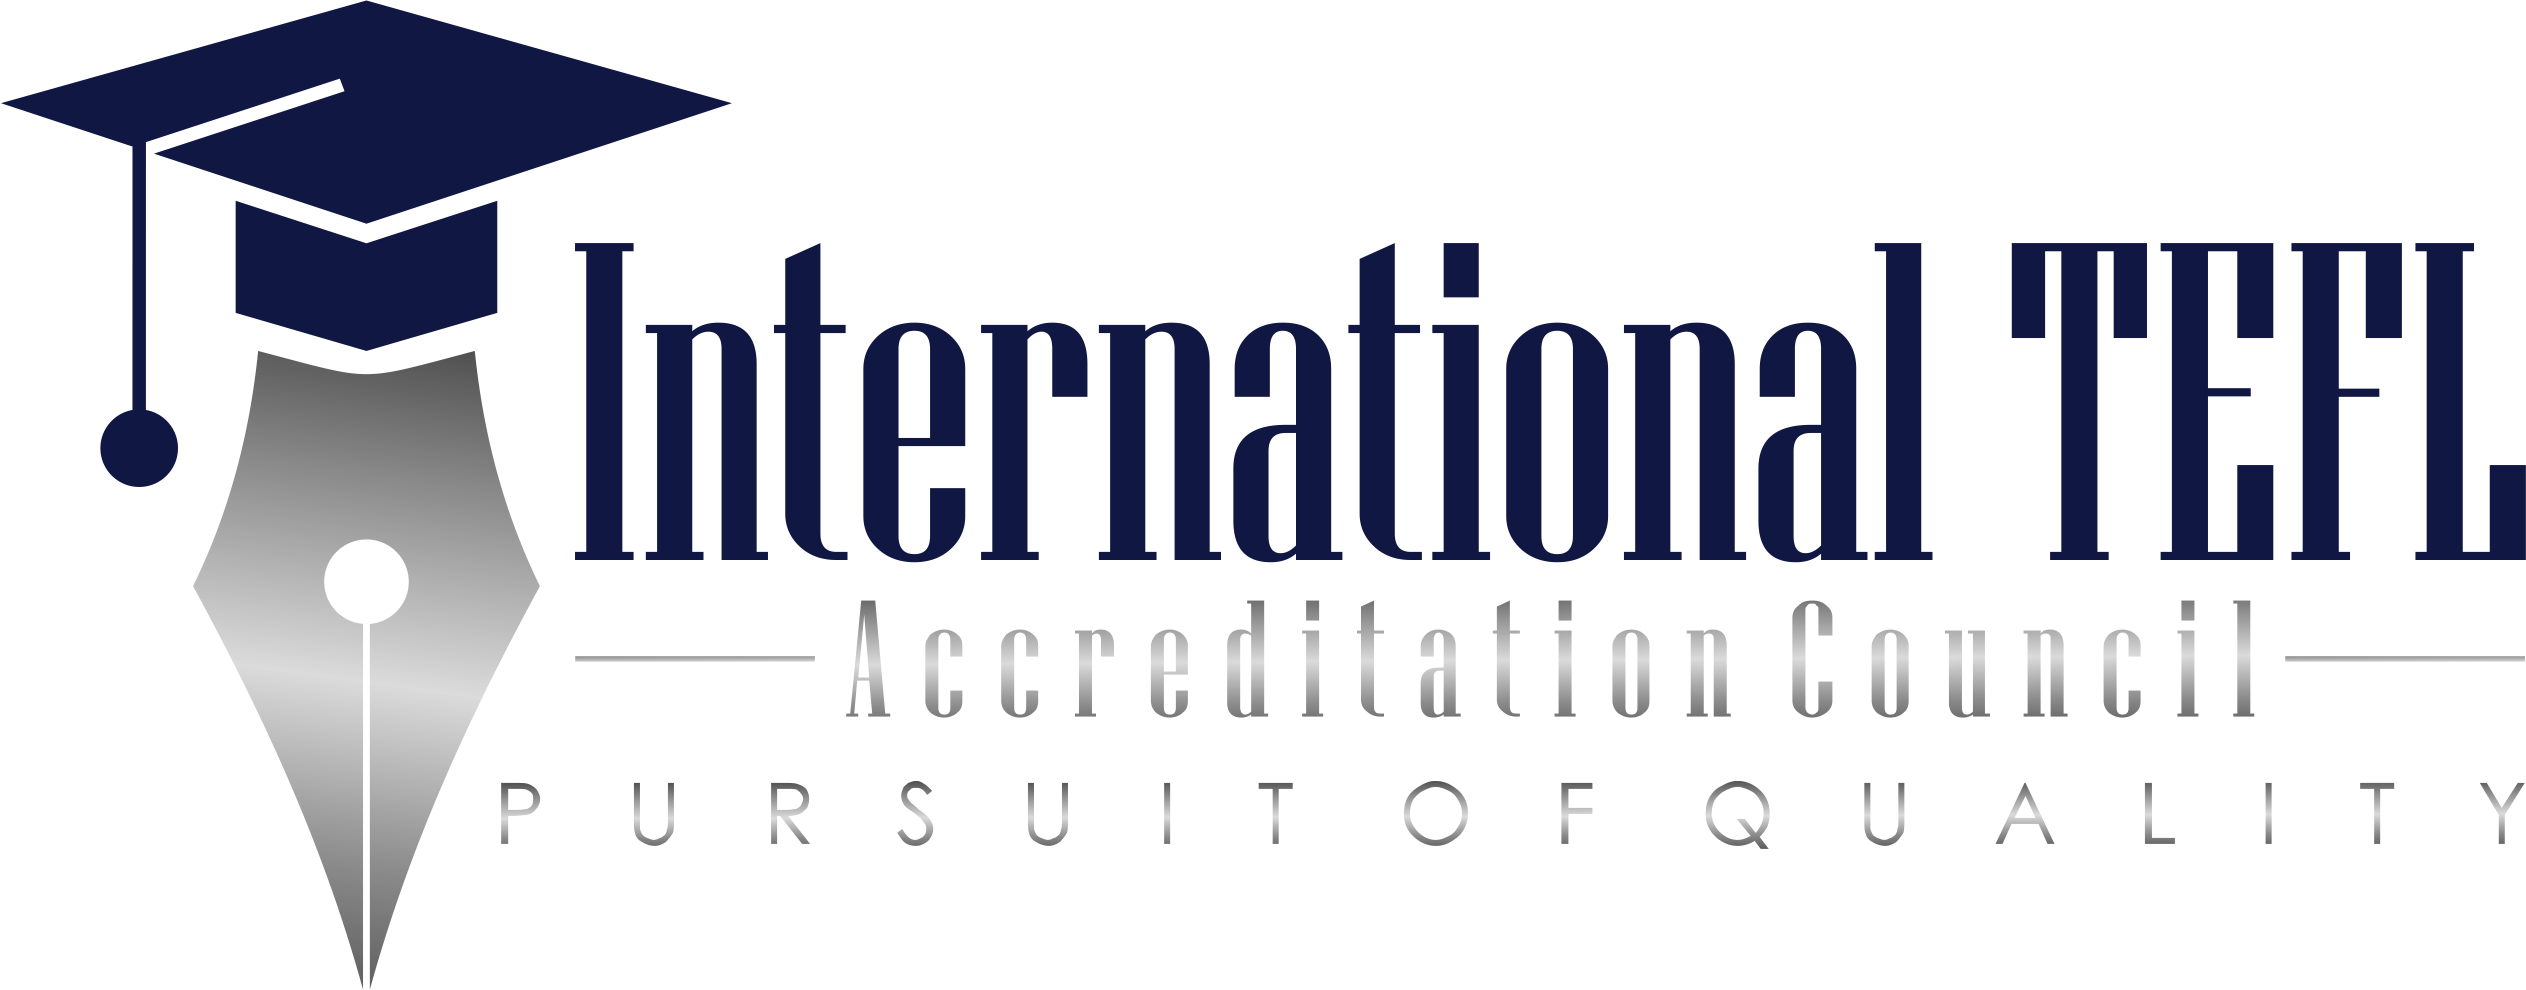 International TEFL Accreditation Council Logo